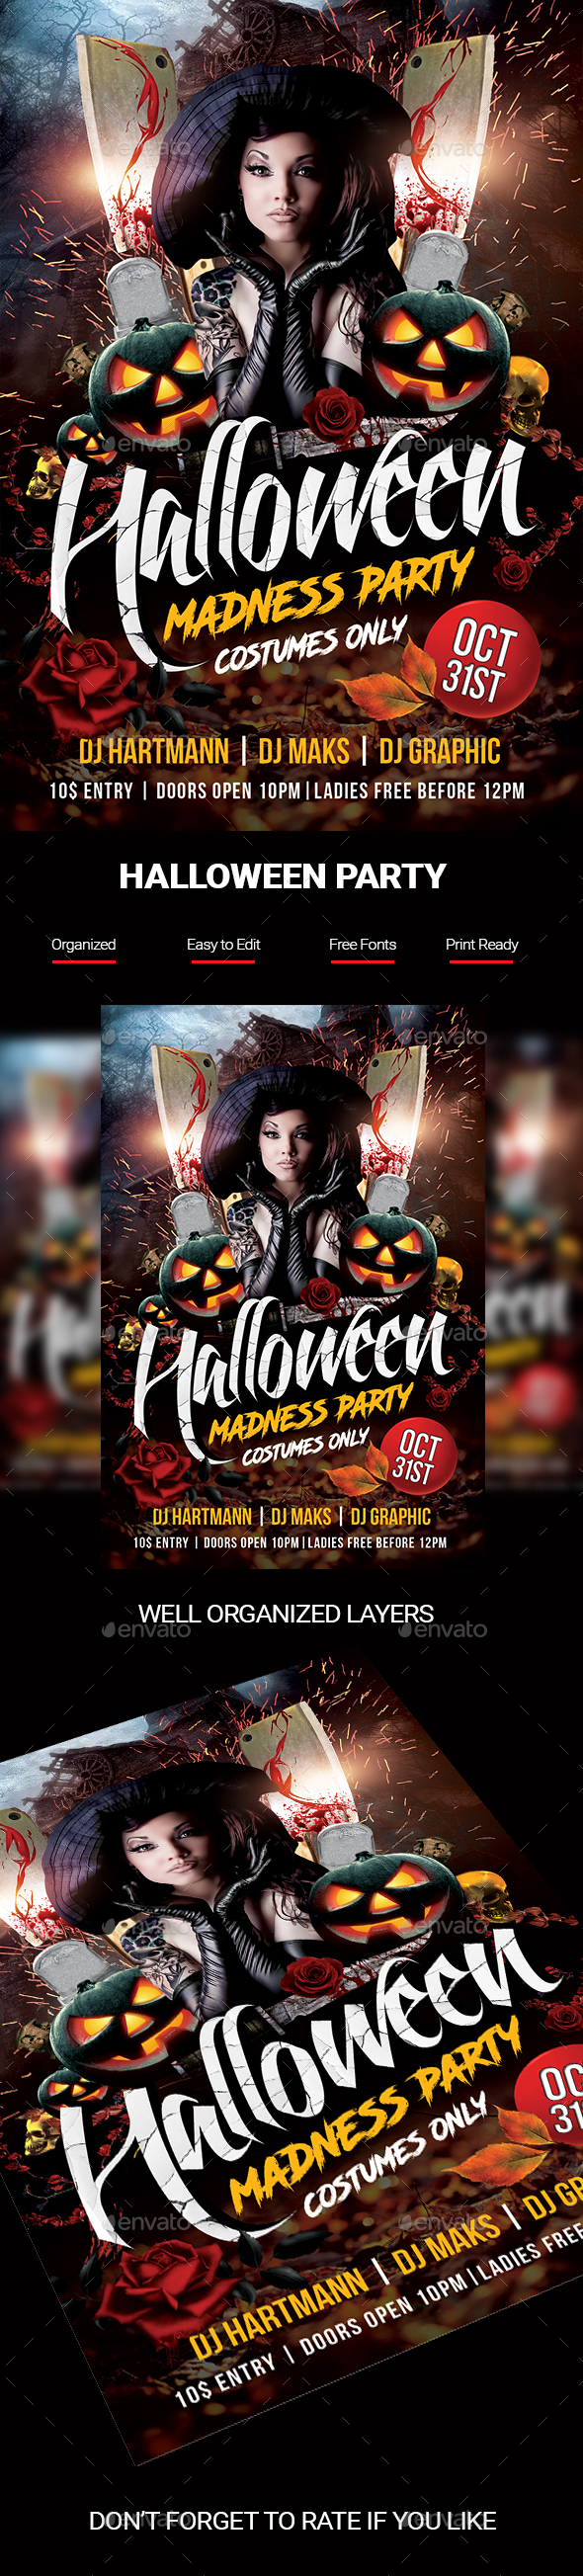 Halloween Madness Flyer - Holidays Events